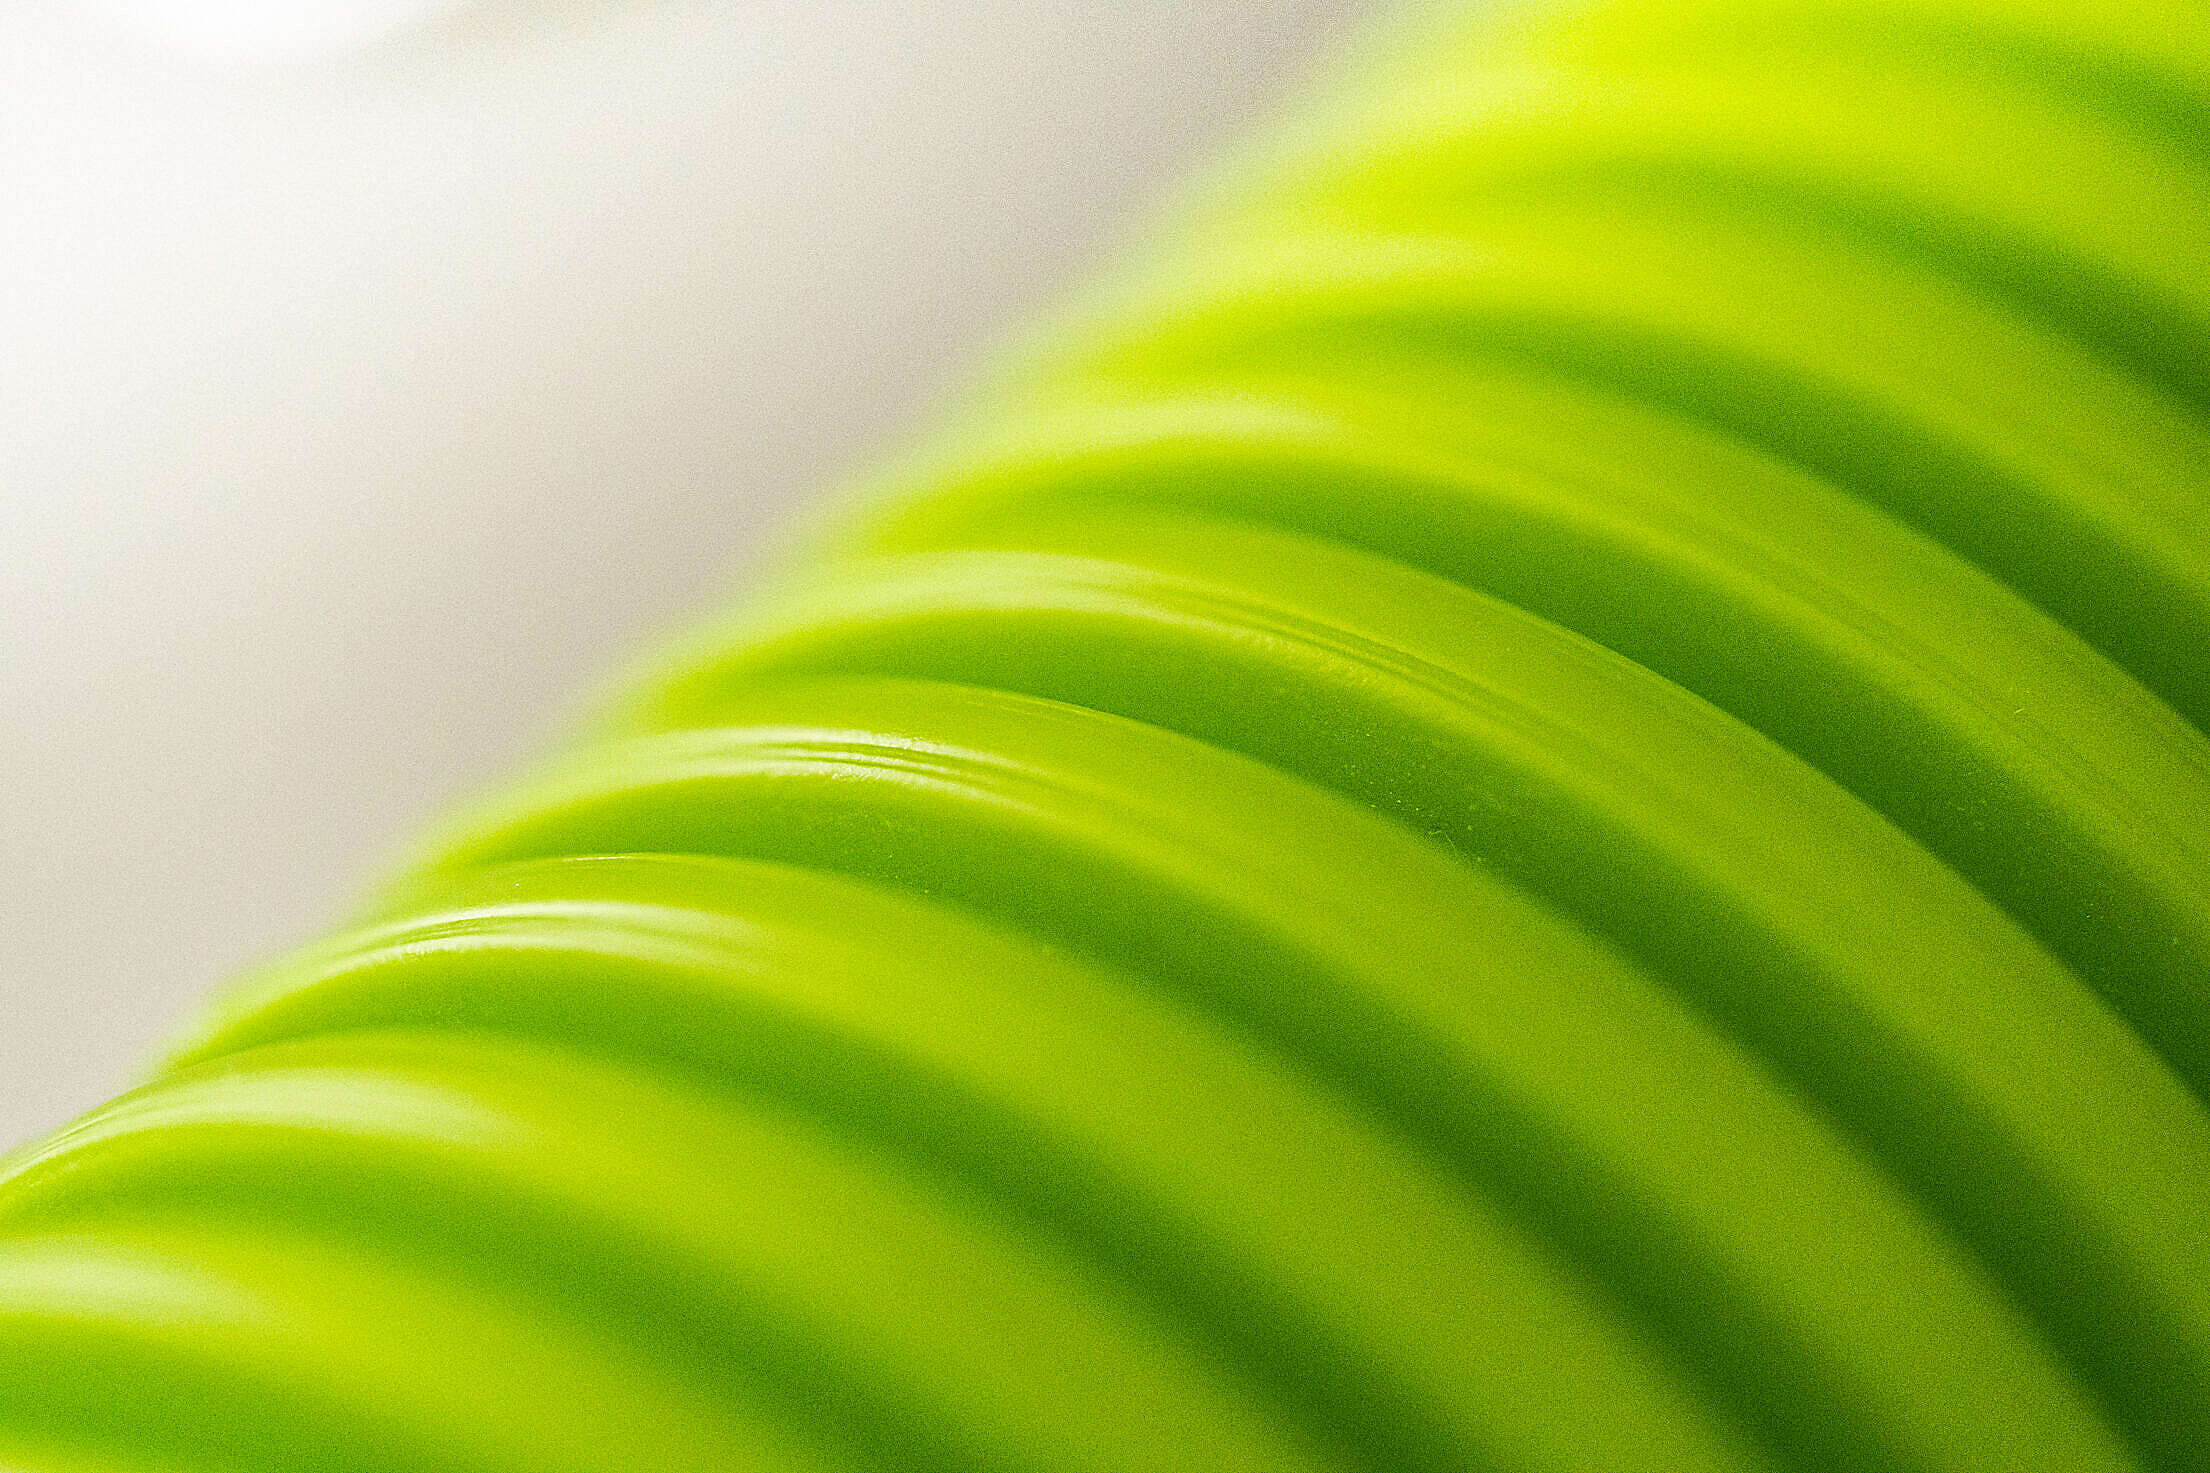 Green Hygienic Flexible Heat Recovery Ventilation Pipe Free Stock Photo